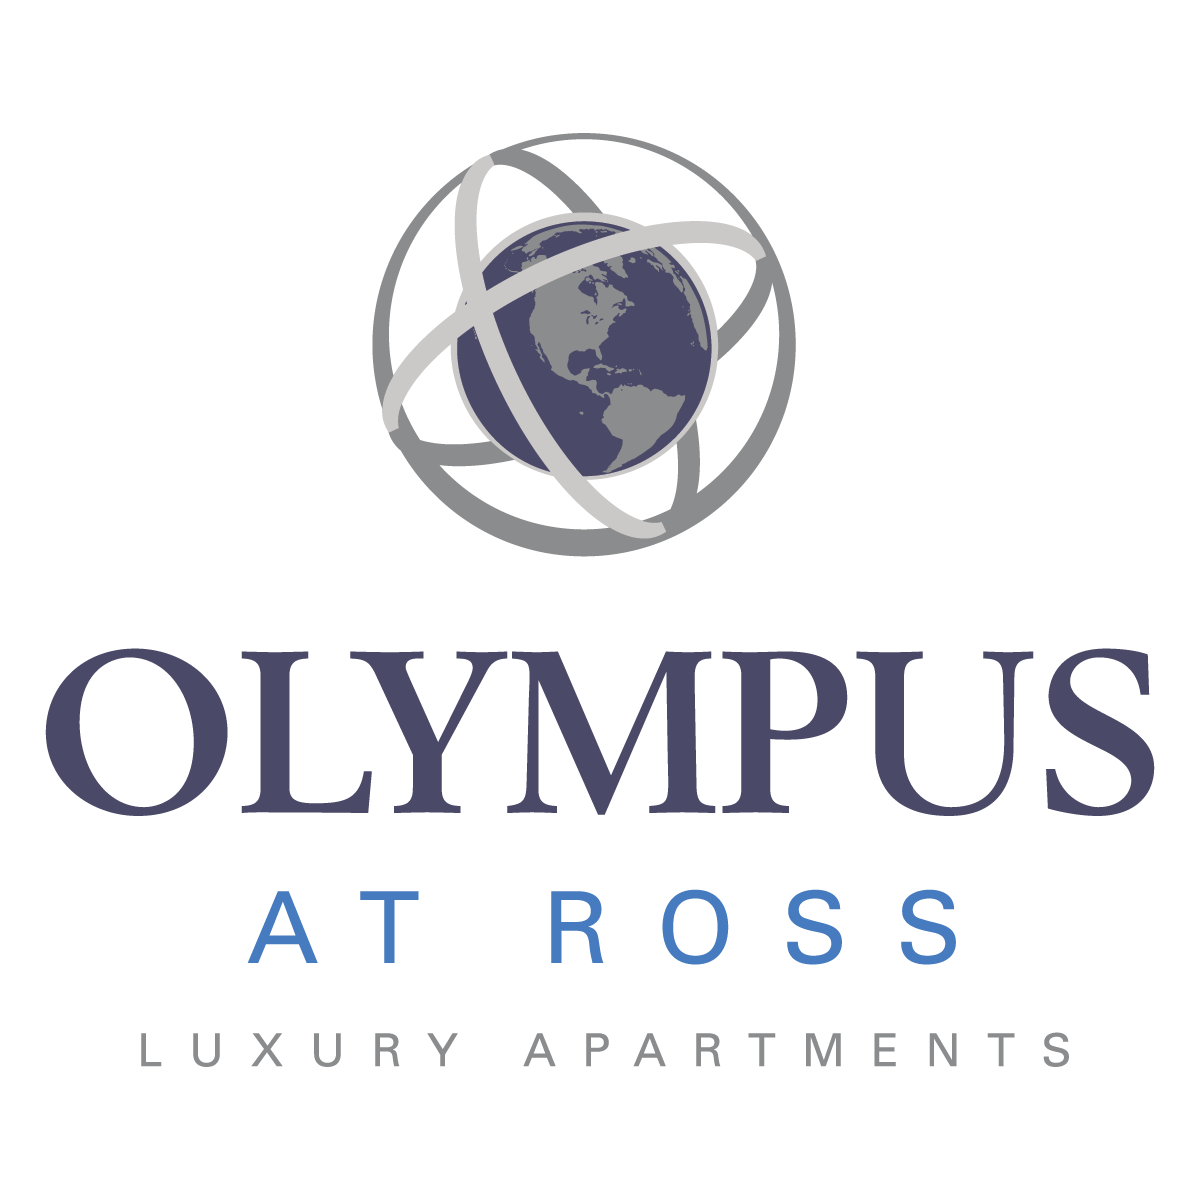 Olympus at Ross Luxury Apartments - Dallas, TX - Apartments